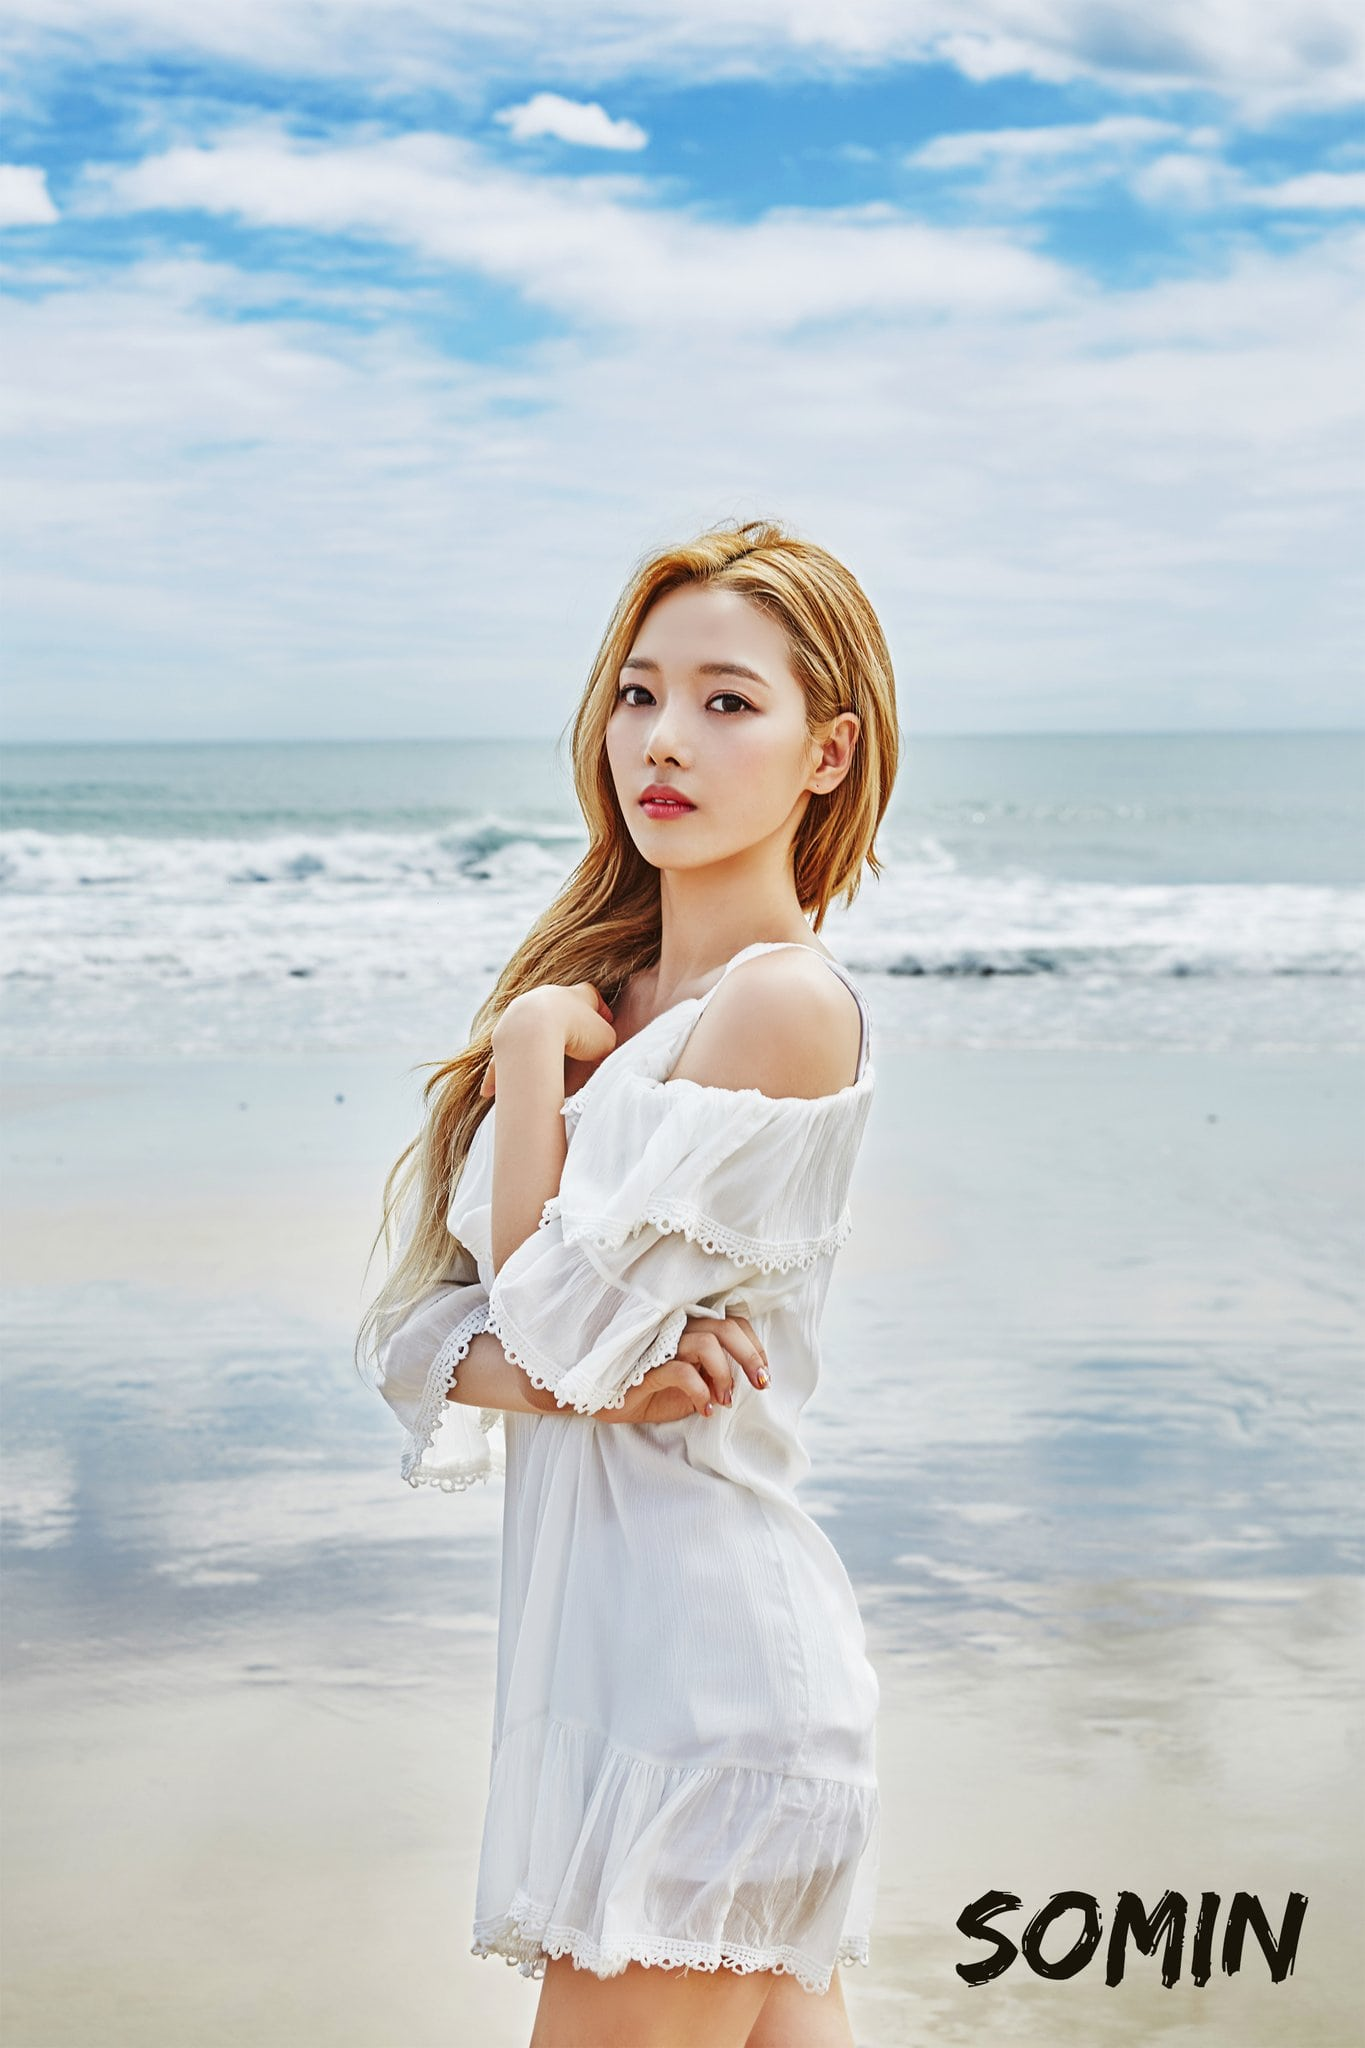 Update: K.A.R.D Drops Beautiful Seaside Teaser Photos For Upcoming Debut